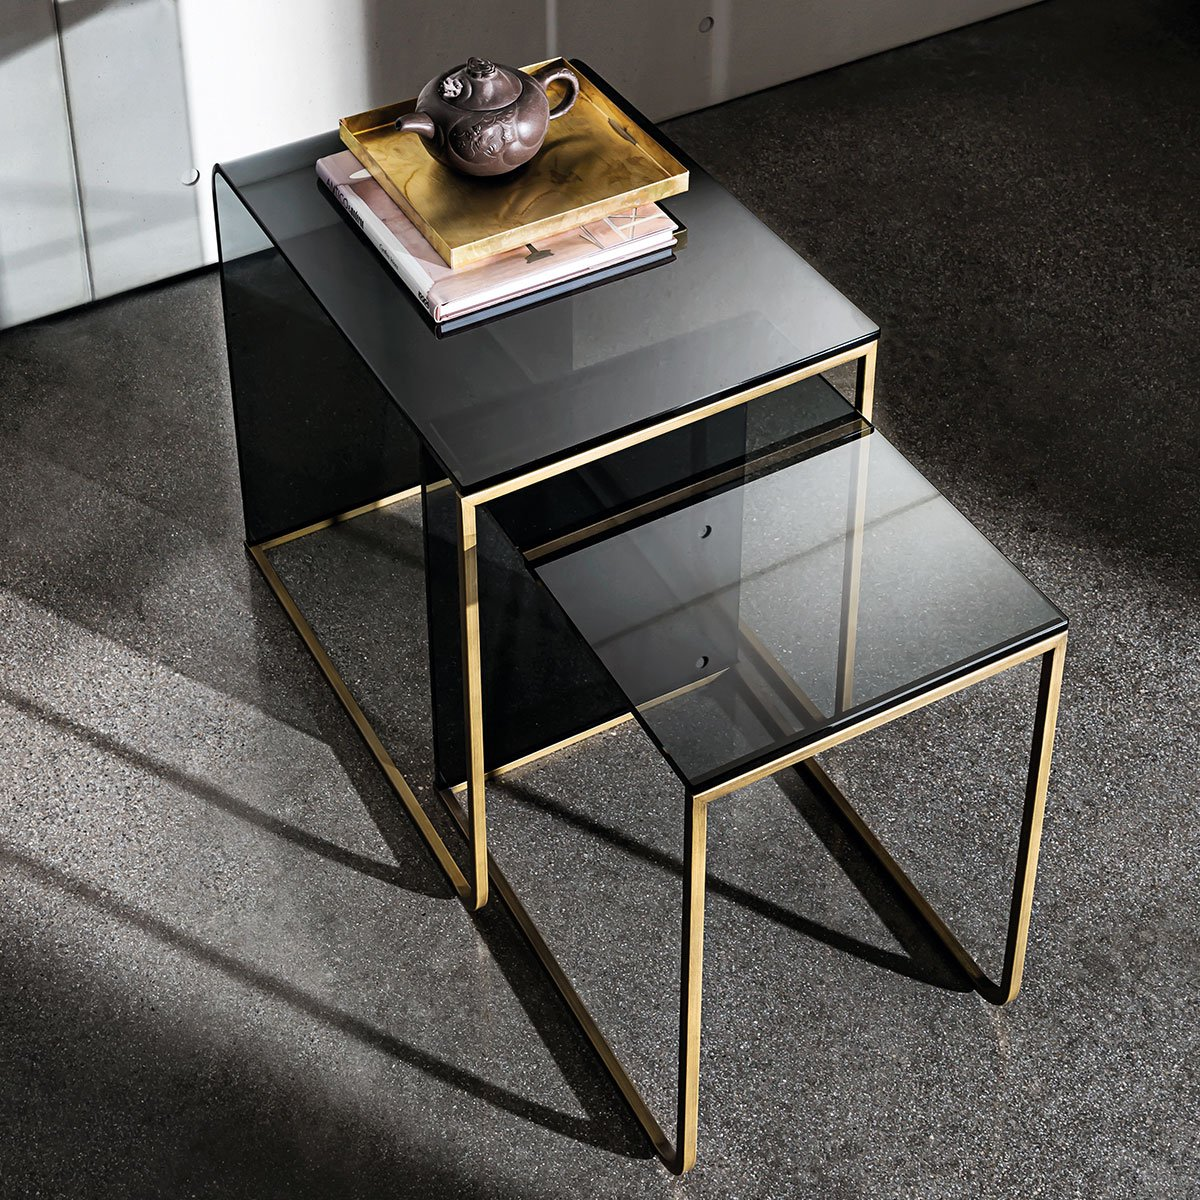 Nido glass and metal coffee table klarity glass furniture - Table basse gigogne verre ...